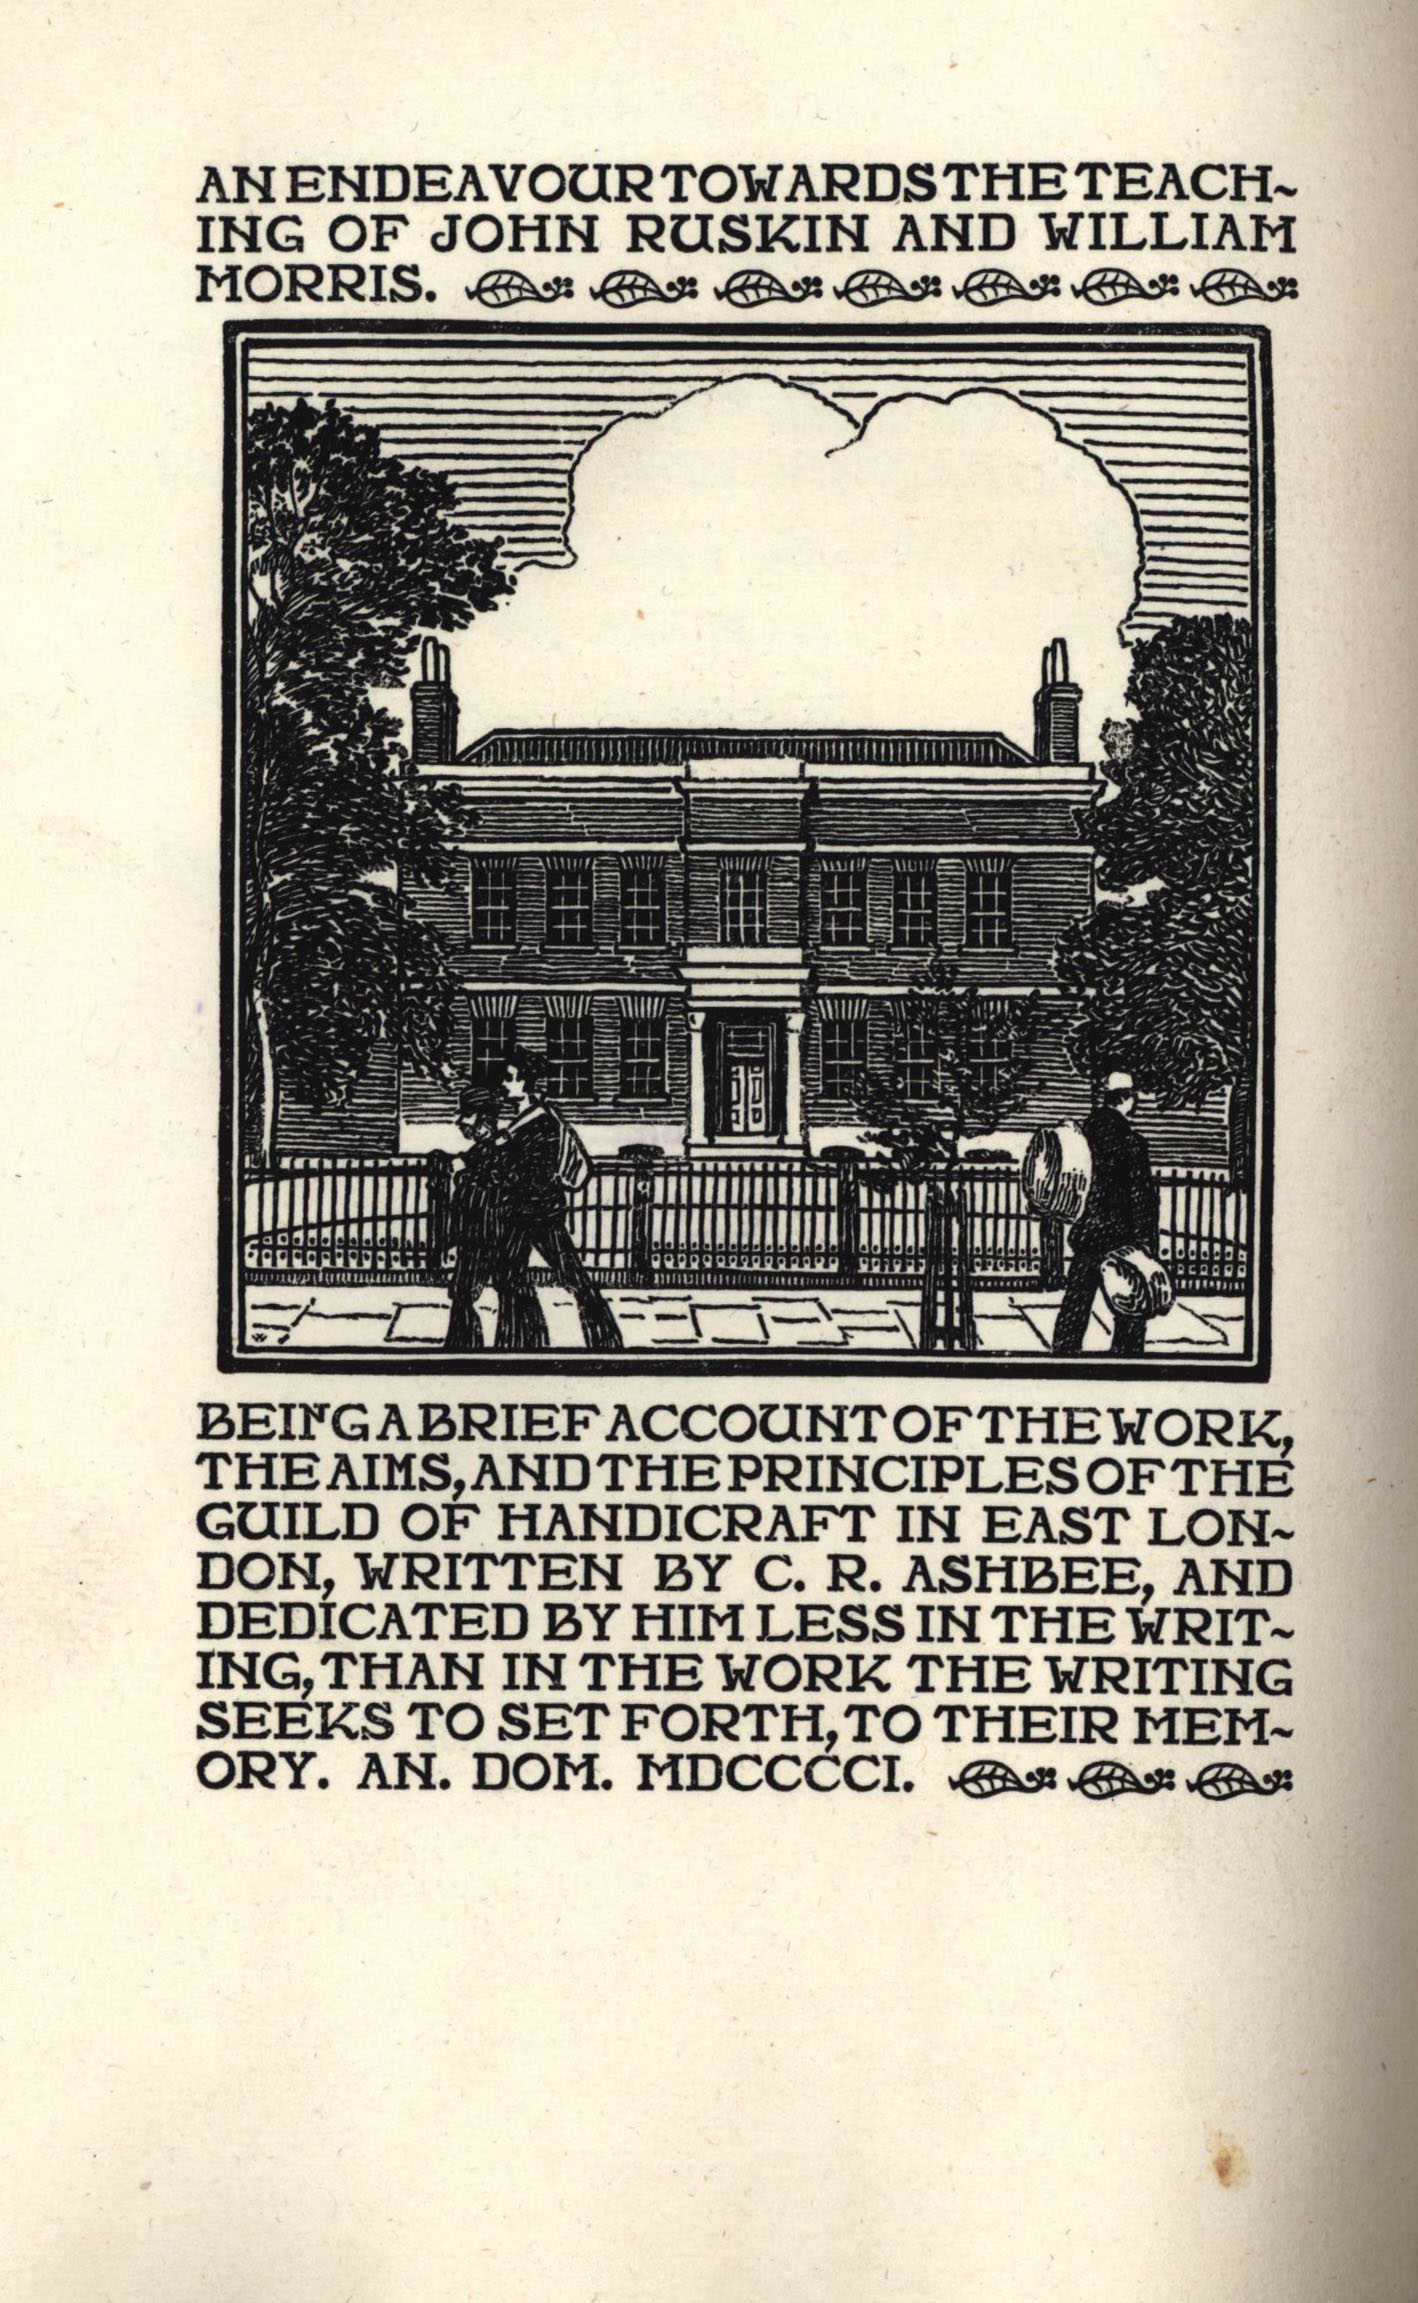 The first example of the Essex House pica typeface and woodcut of Essex House, Mile End. [Ashbee (1901) 'An endeavour towards the teaching of John Ruskin and William Morris', Title page]